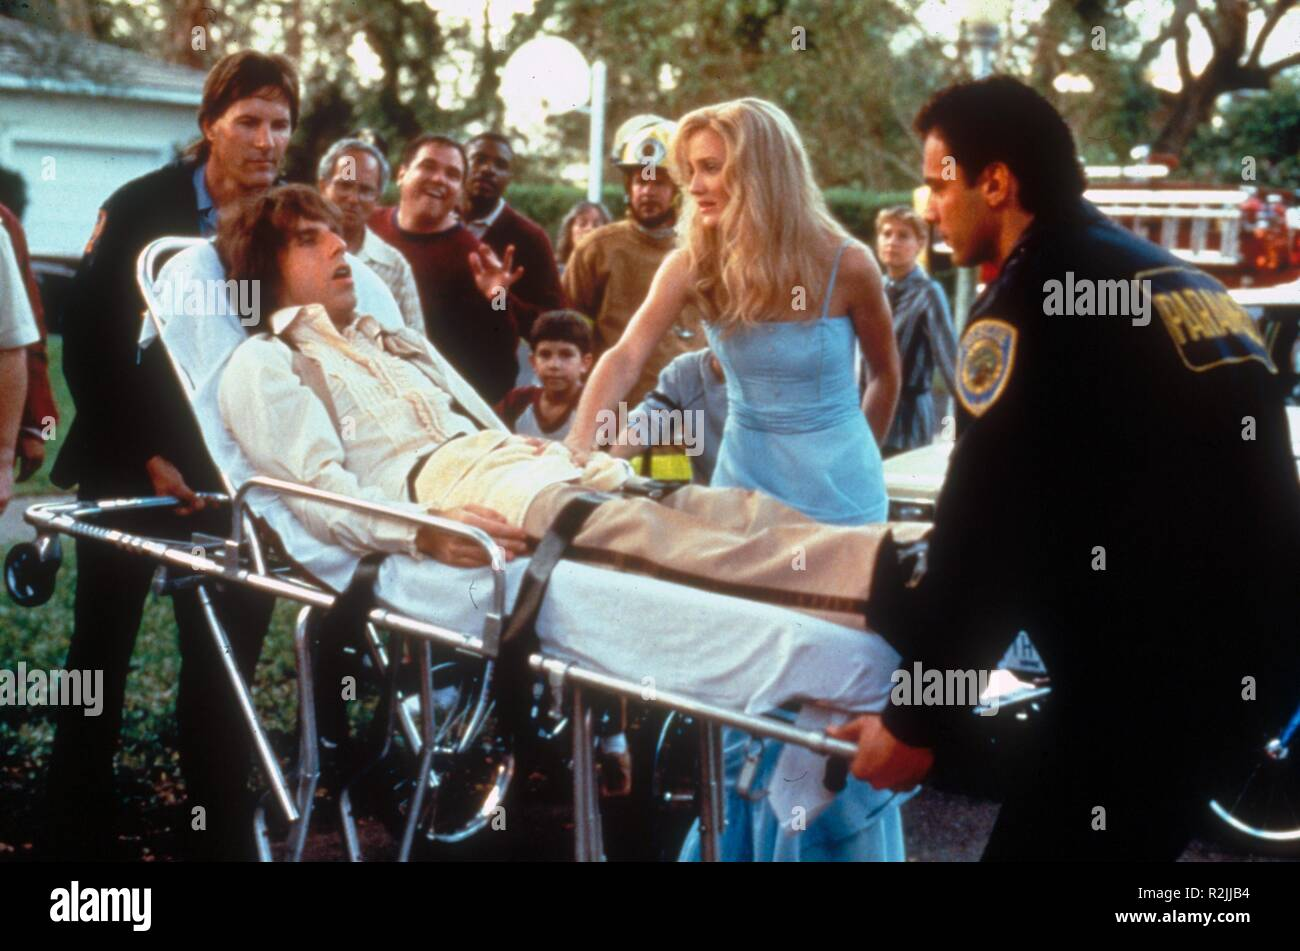 There's Something About Mary  Year : 1998  USA Director : Bobby Farrelly, Peter Farrelly Ben Stiller, Cameron Diaz - Stock Image